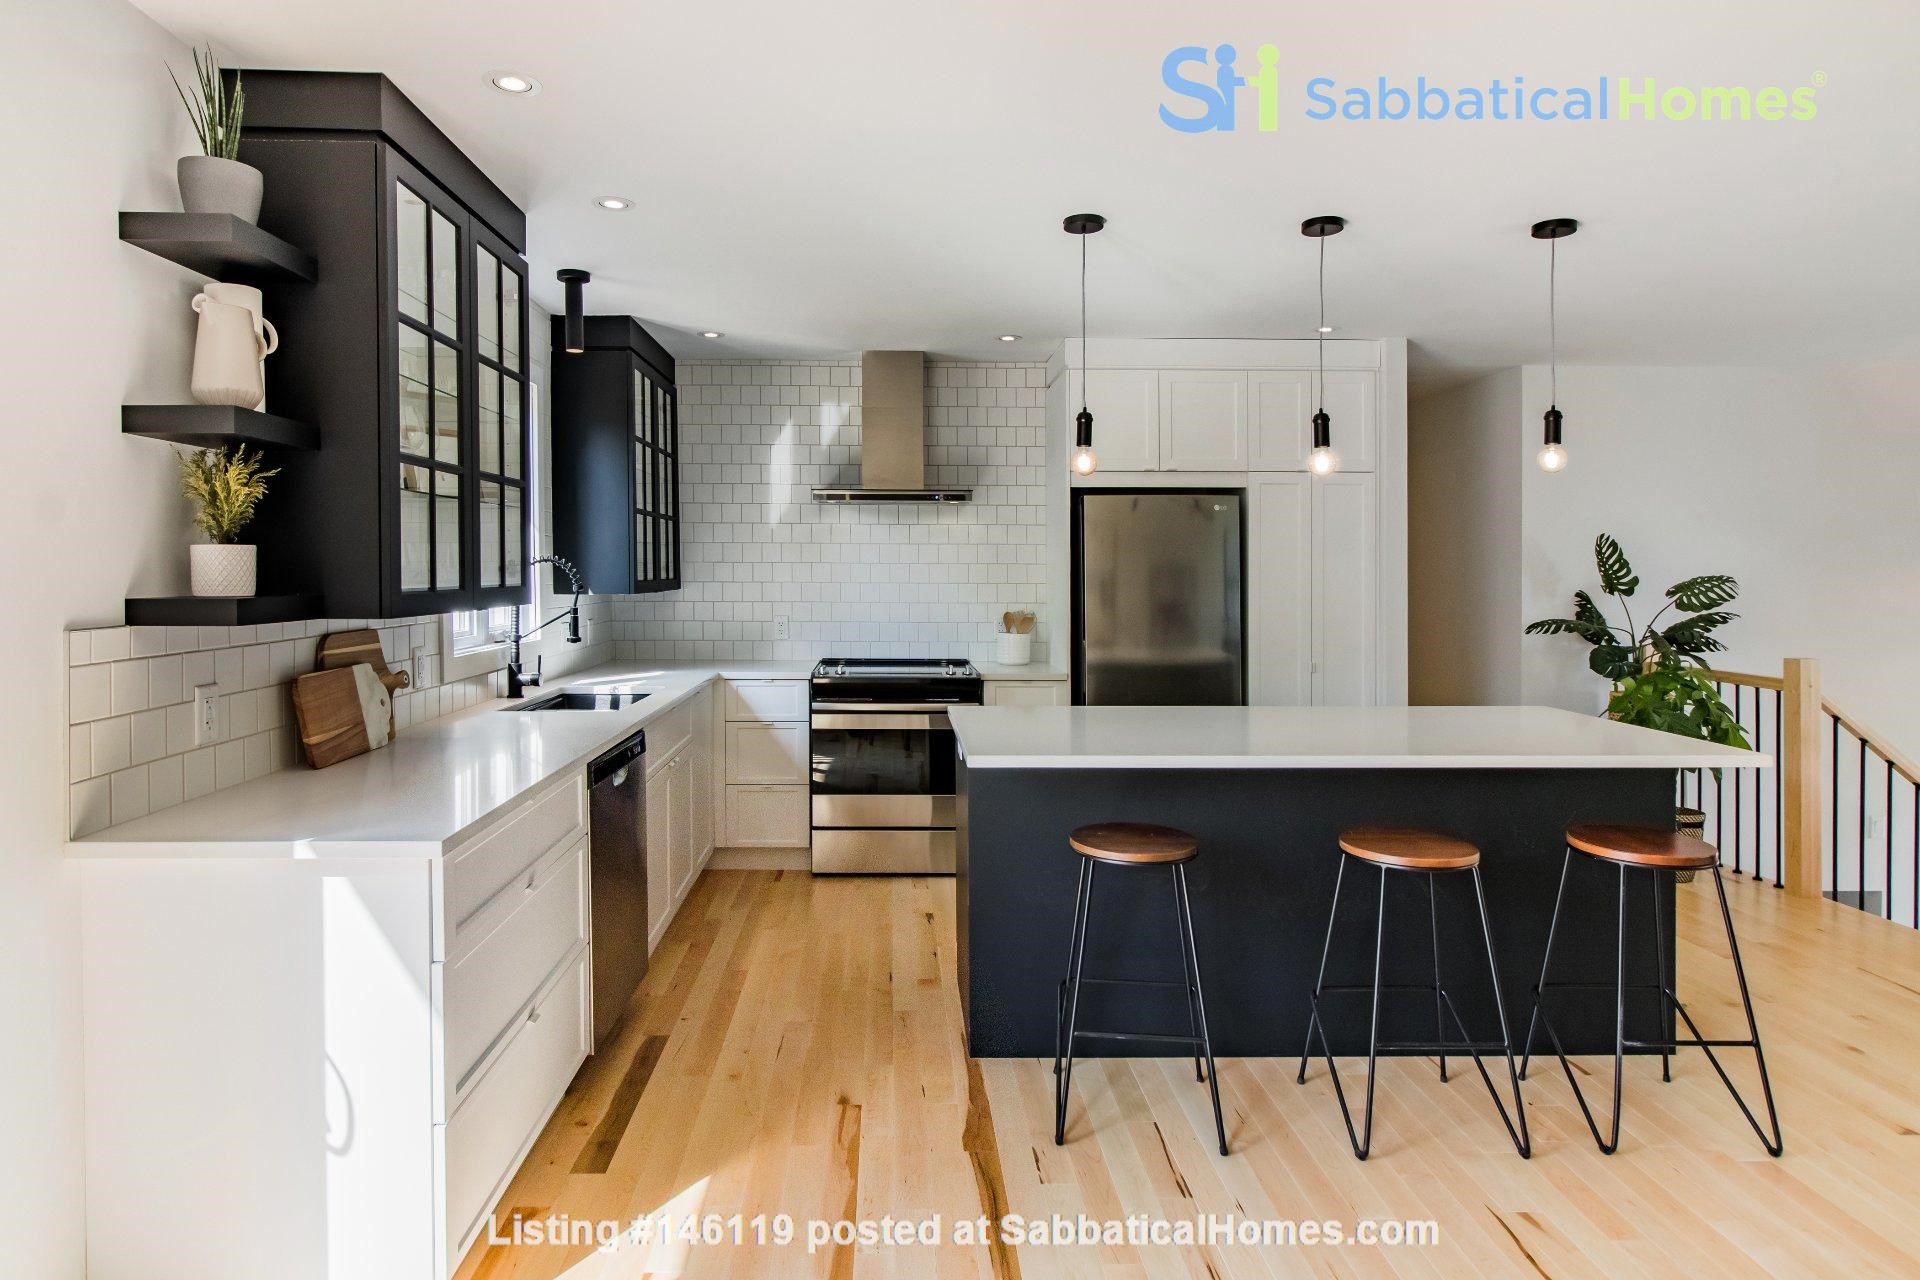 Brand new split level house in a quiet suburb 20 mins from Montreal Home Exchange in La Prairie 1